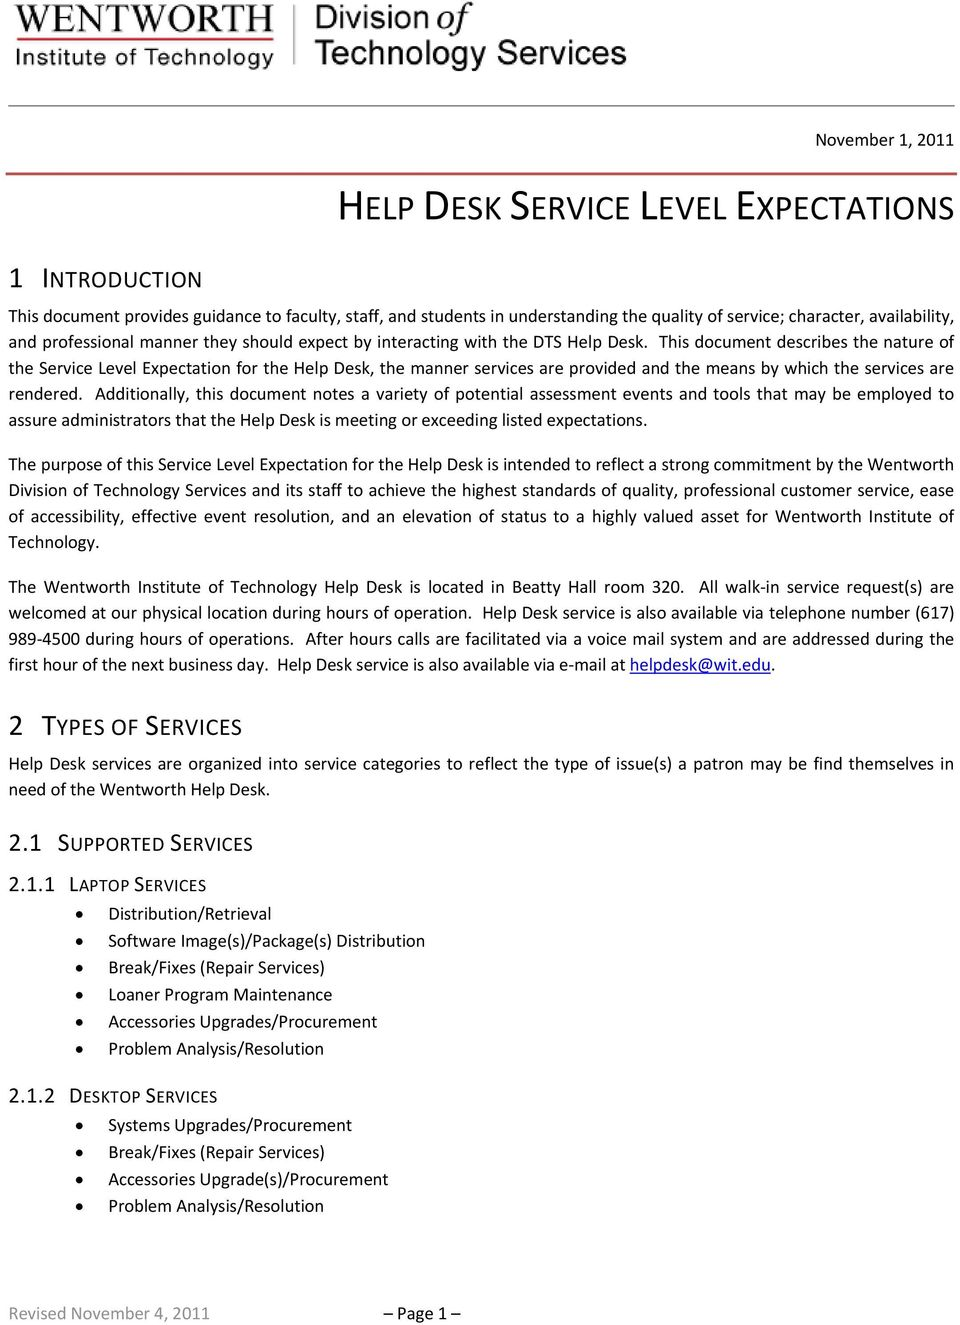 This document describes the nature of the Service Level Expectation for the Help Desk, the manner services are provided and the means by which the services are rendered.